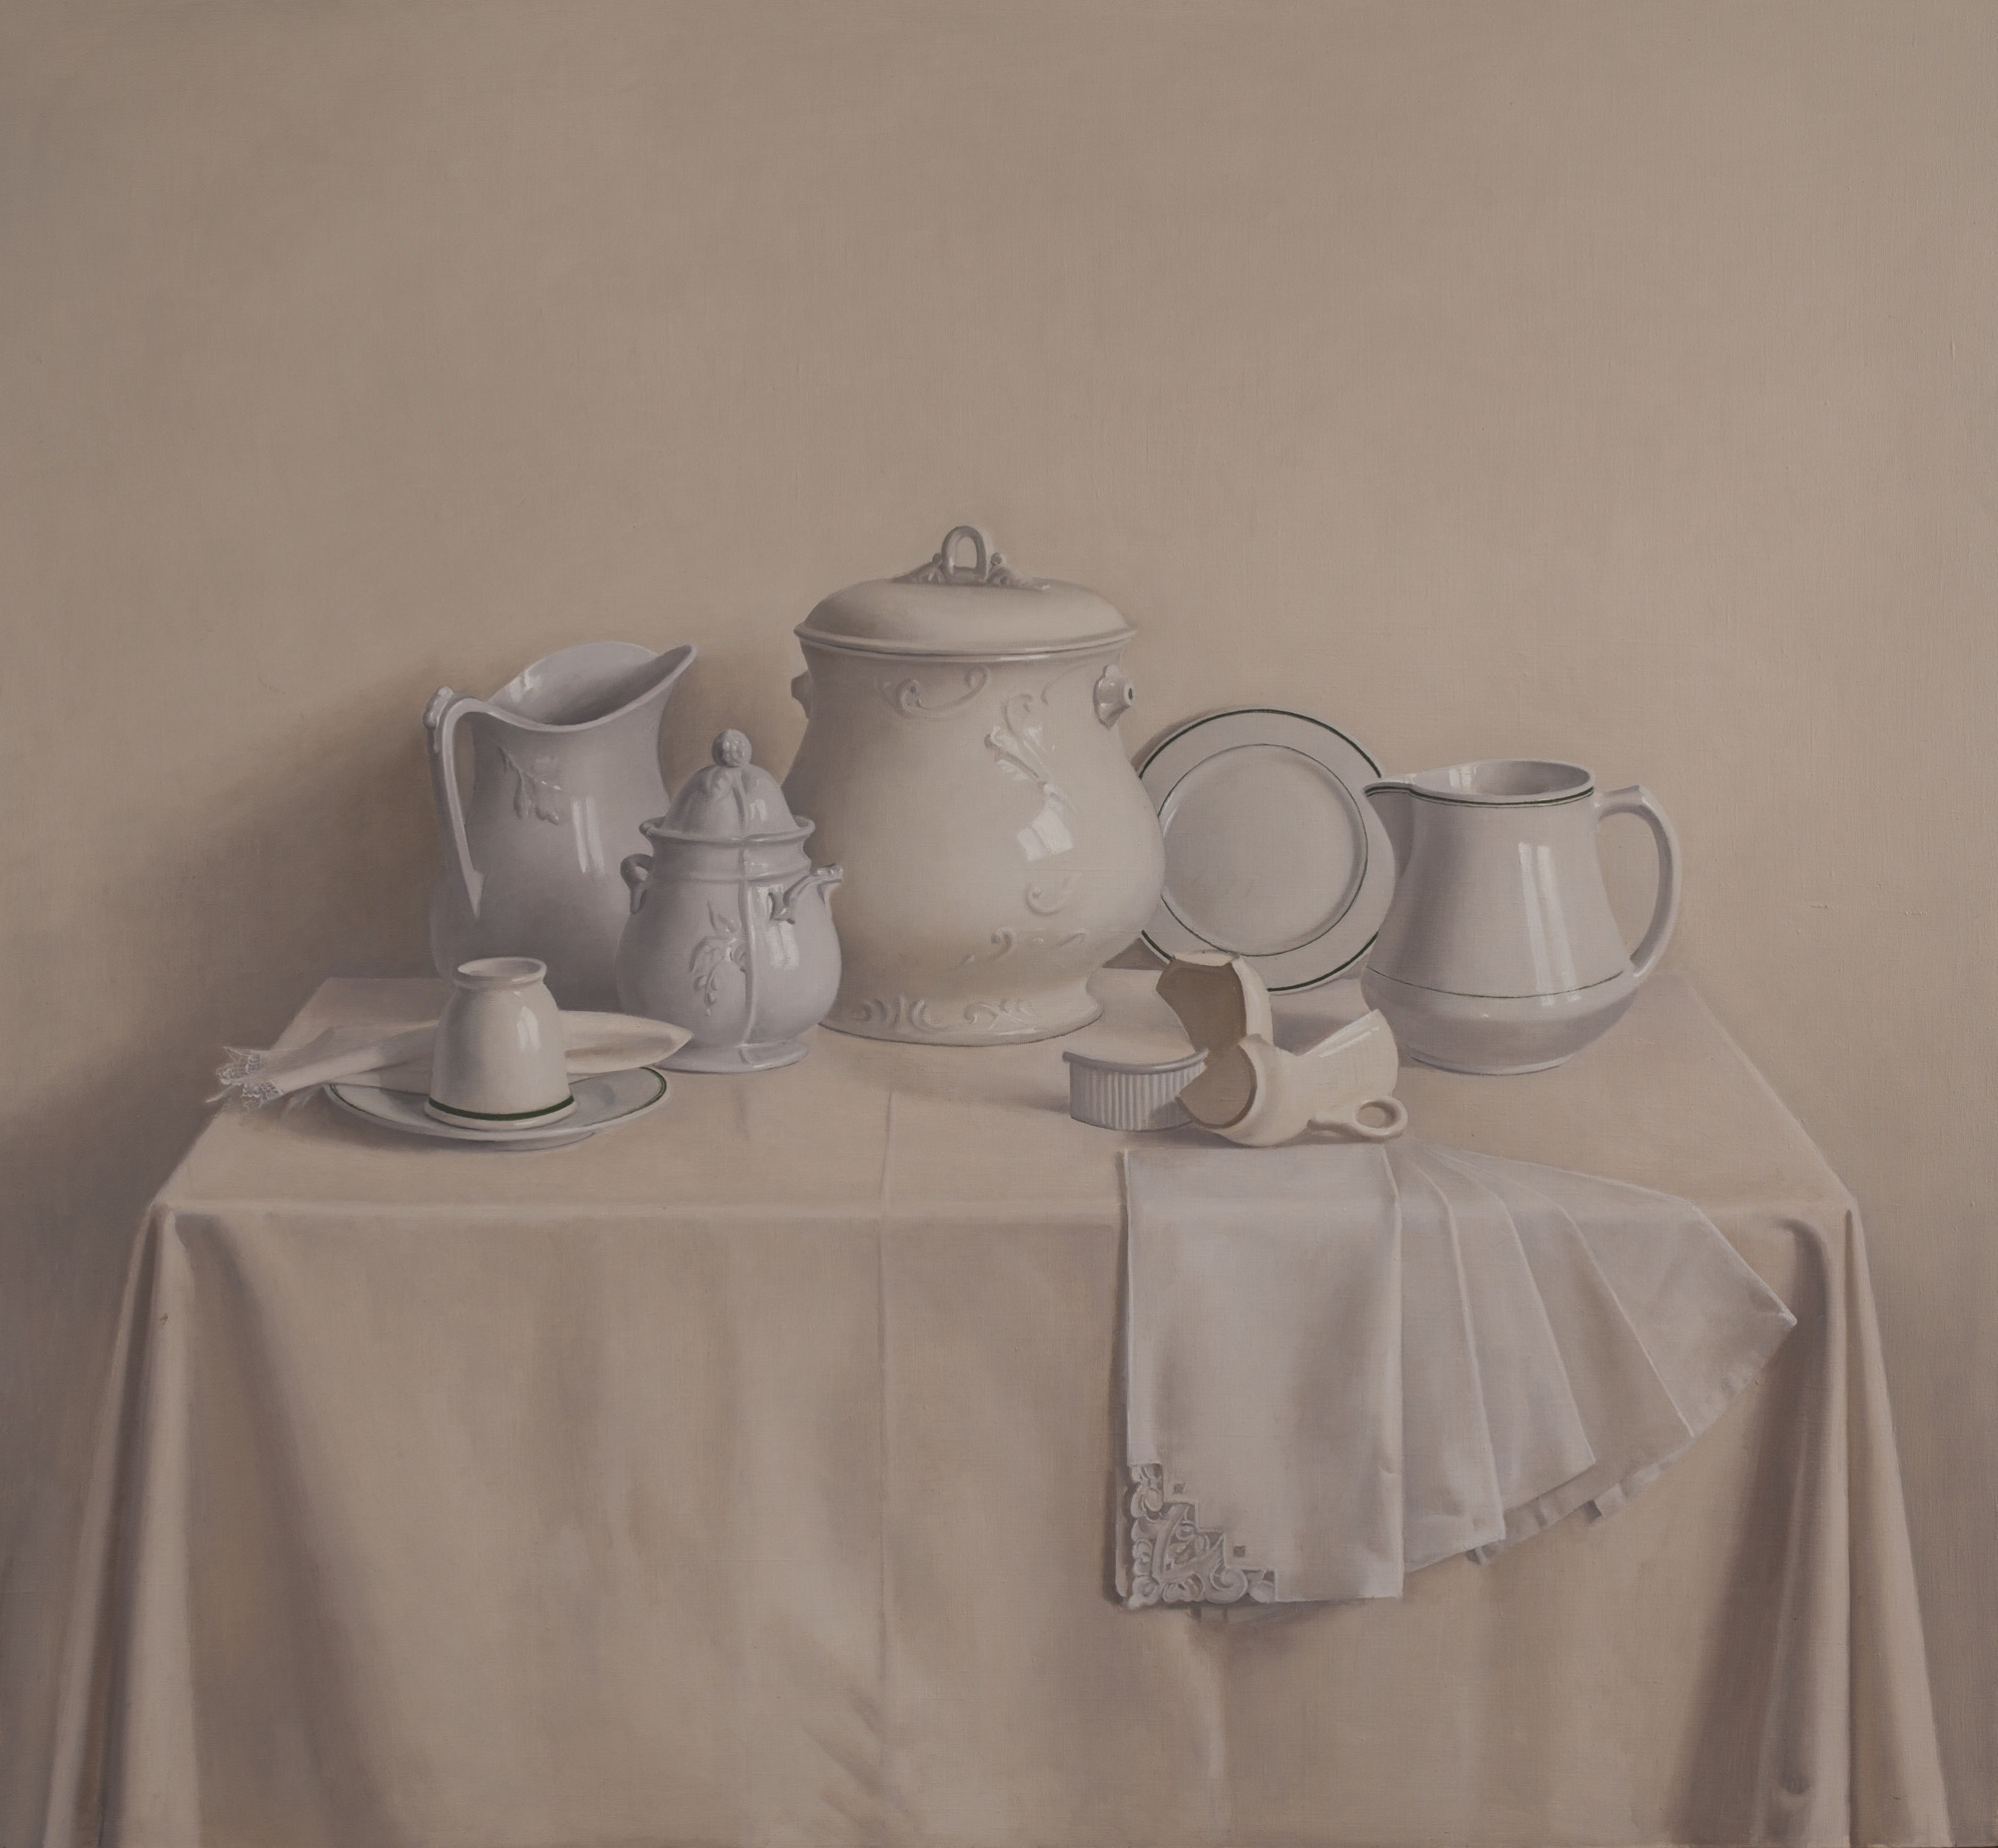 Raymond Han    Untitled [Still Life with Broken Vase and Hanging Napkins] , 1983  Oil on linen  48 x 52 inches  121.9 x 132.1 cm